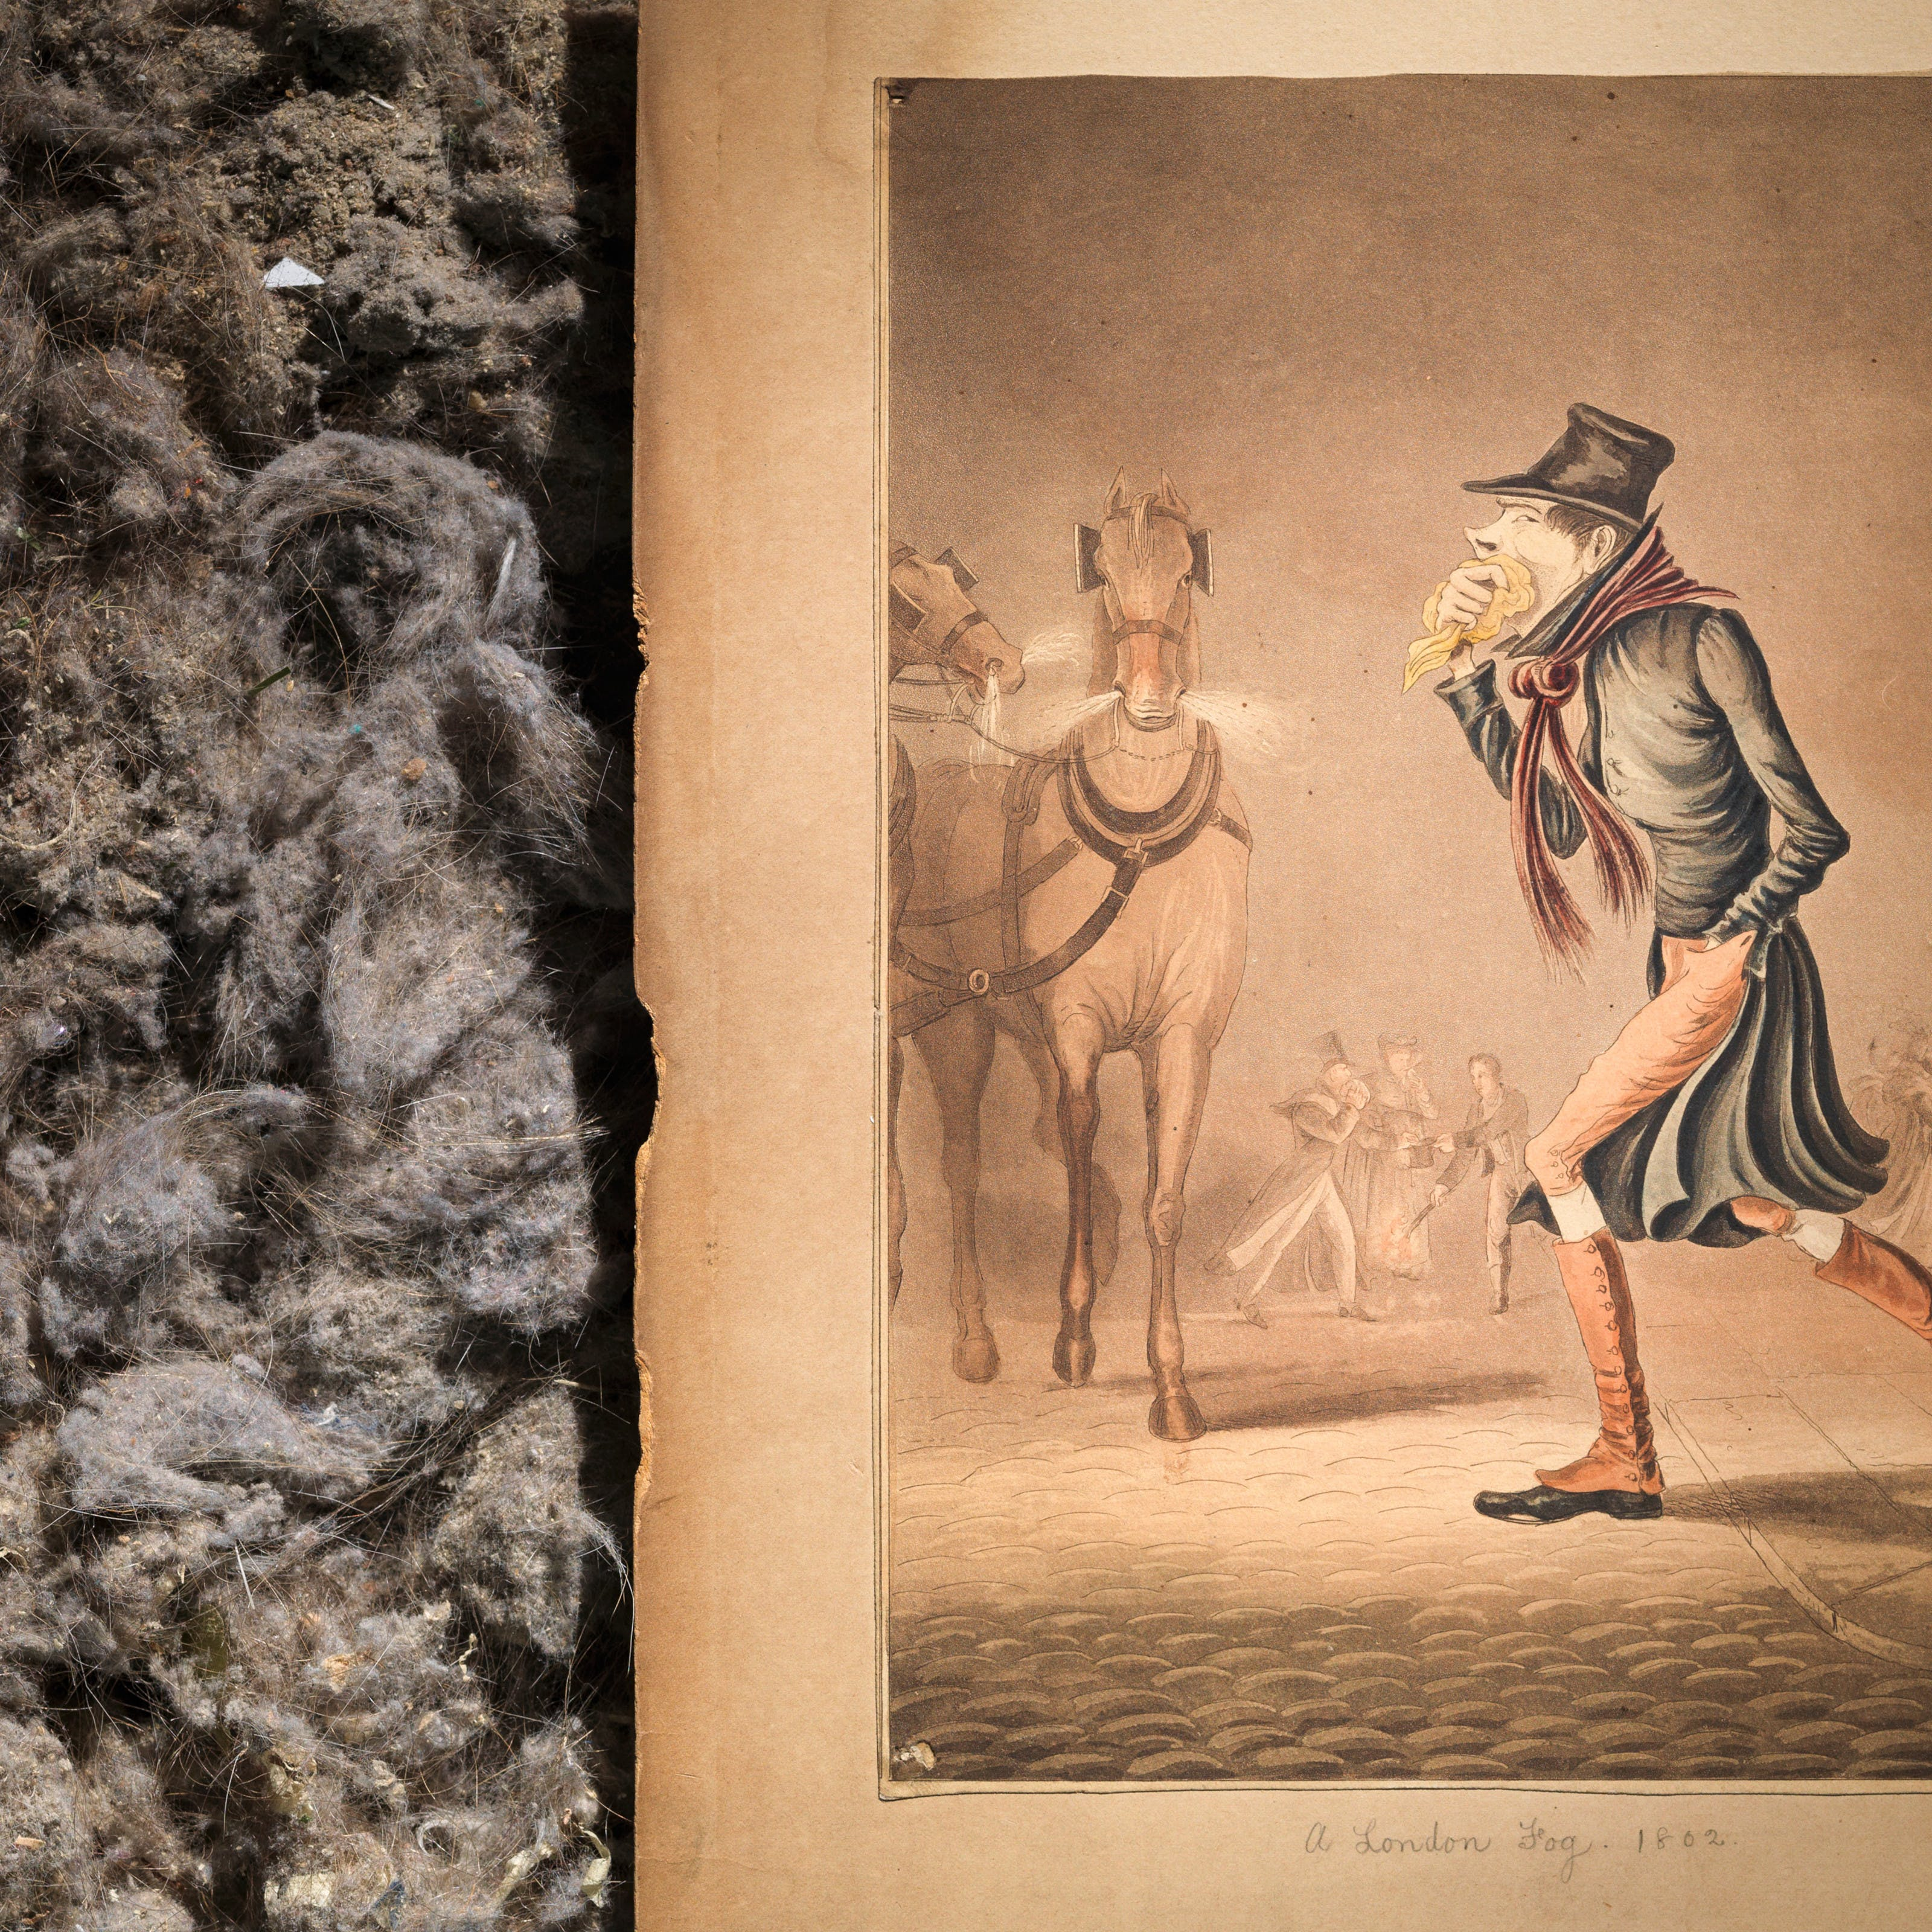 Photograph of part of a coloured aquatint of a man covering his mouth with a handkerchief, walking through a smoggy London street. In the background are two snorting horses and linkboys running about bearing burning torches. The other part of the photograph contains the dirt and dust from a vacuum cleaner bag.